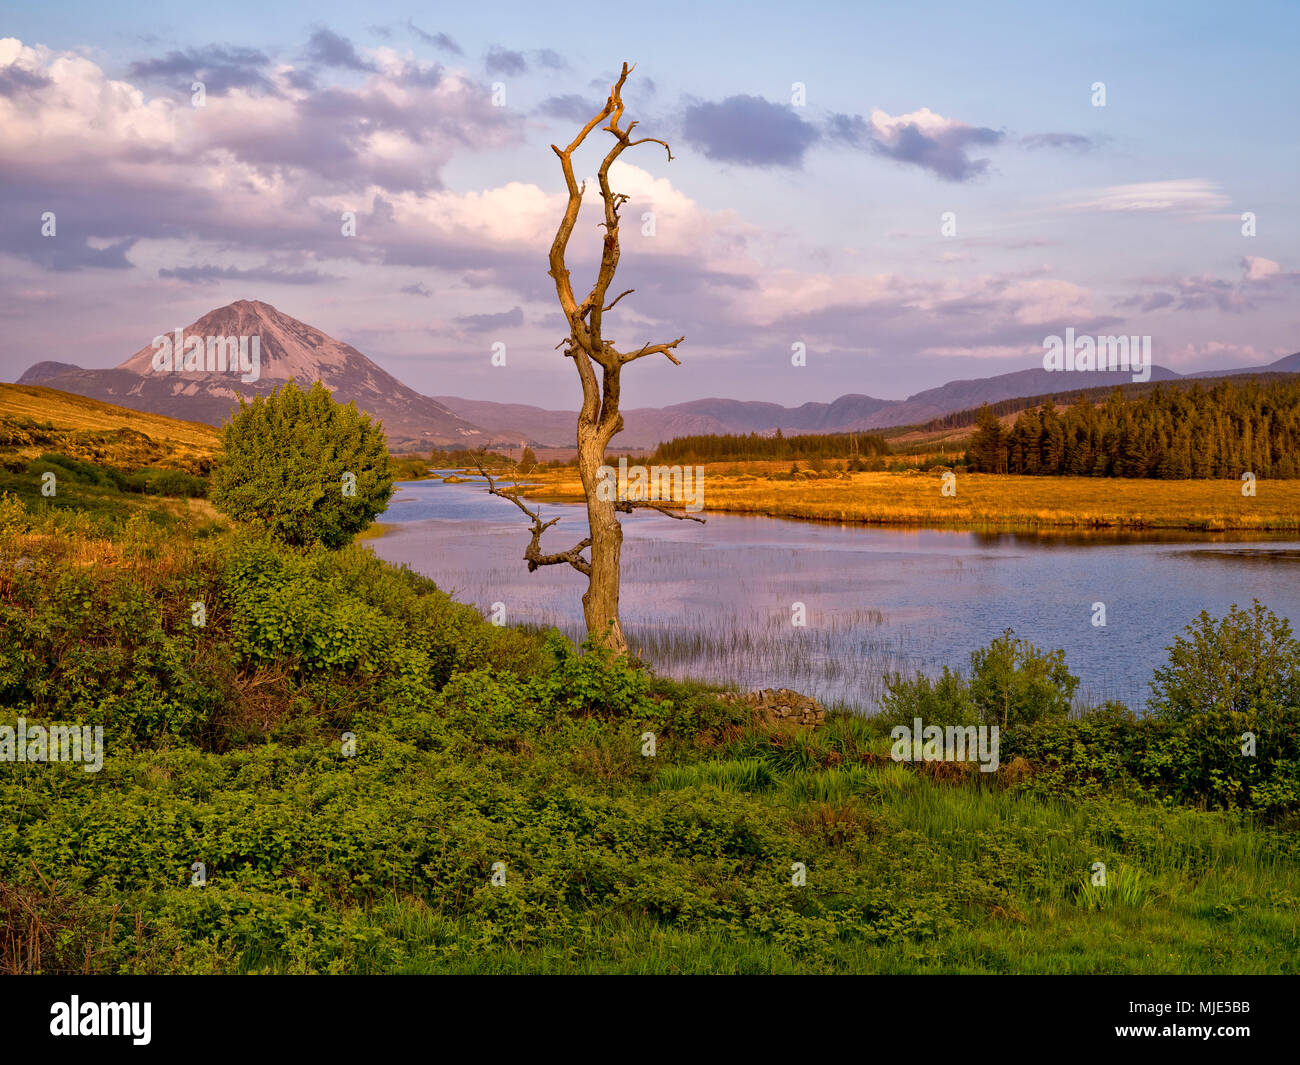 Ireland, Donegal, Glenveagh national park, view to the Mount Errigal at the Lough Nacung, evening sun - Stock Image